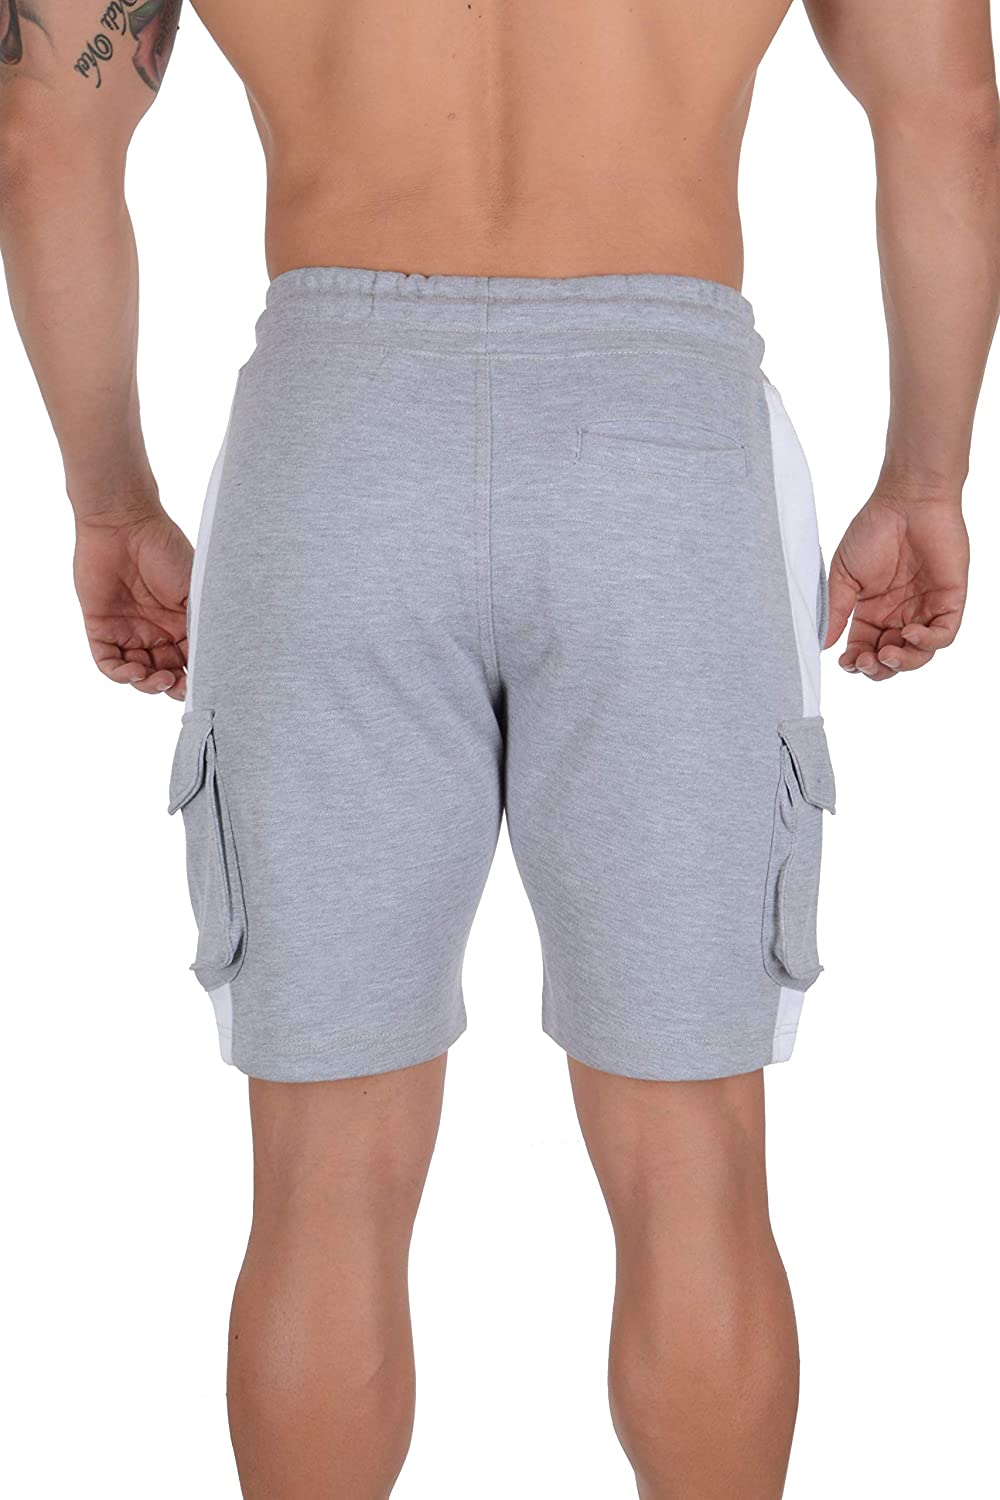 YoungLA Mens Cargo Gym Shorts Casual Workout Athletic Pockets 118